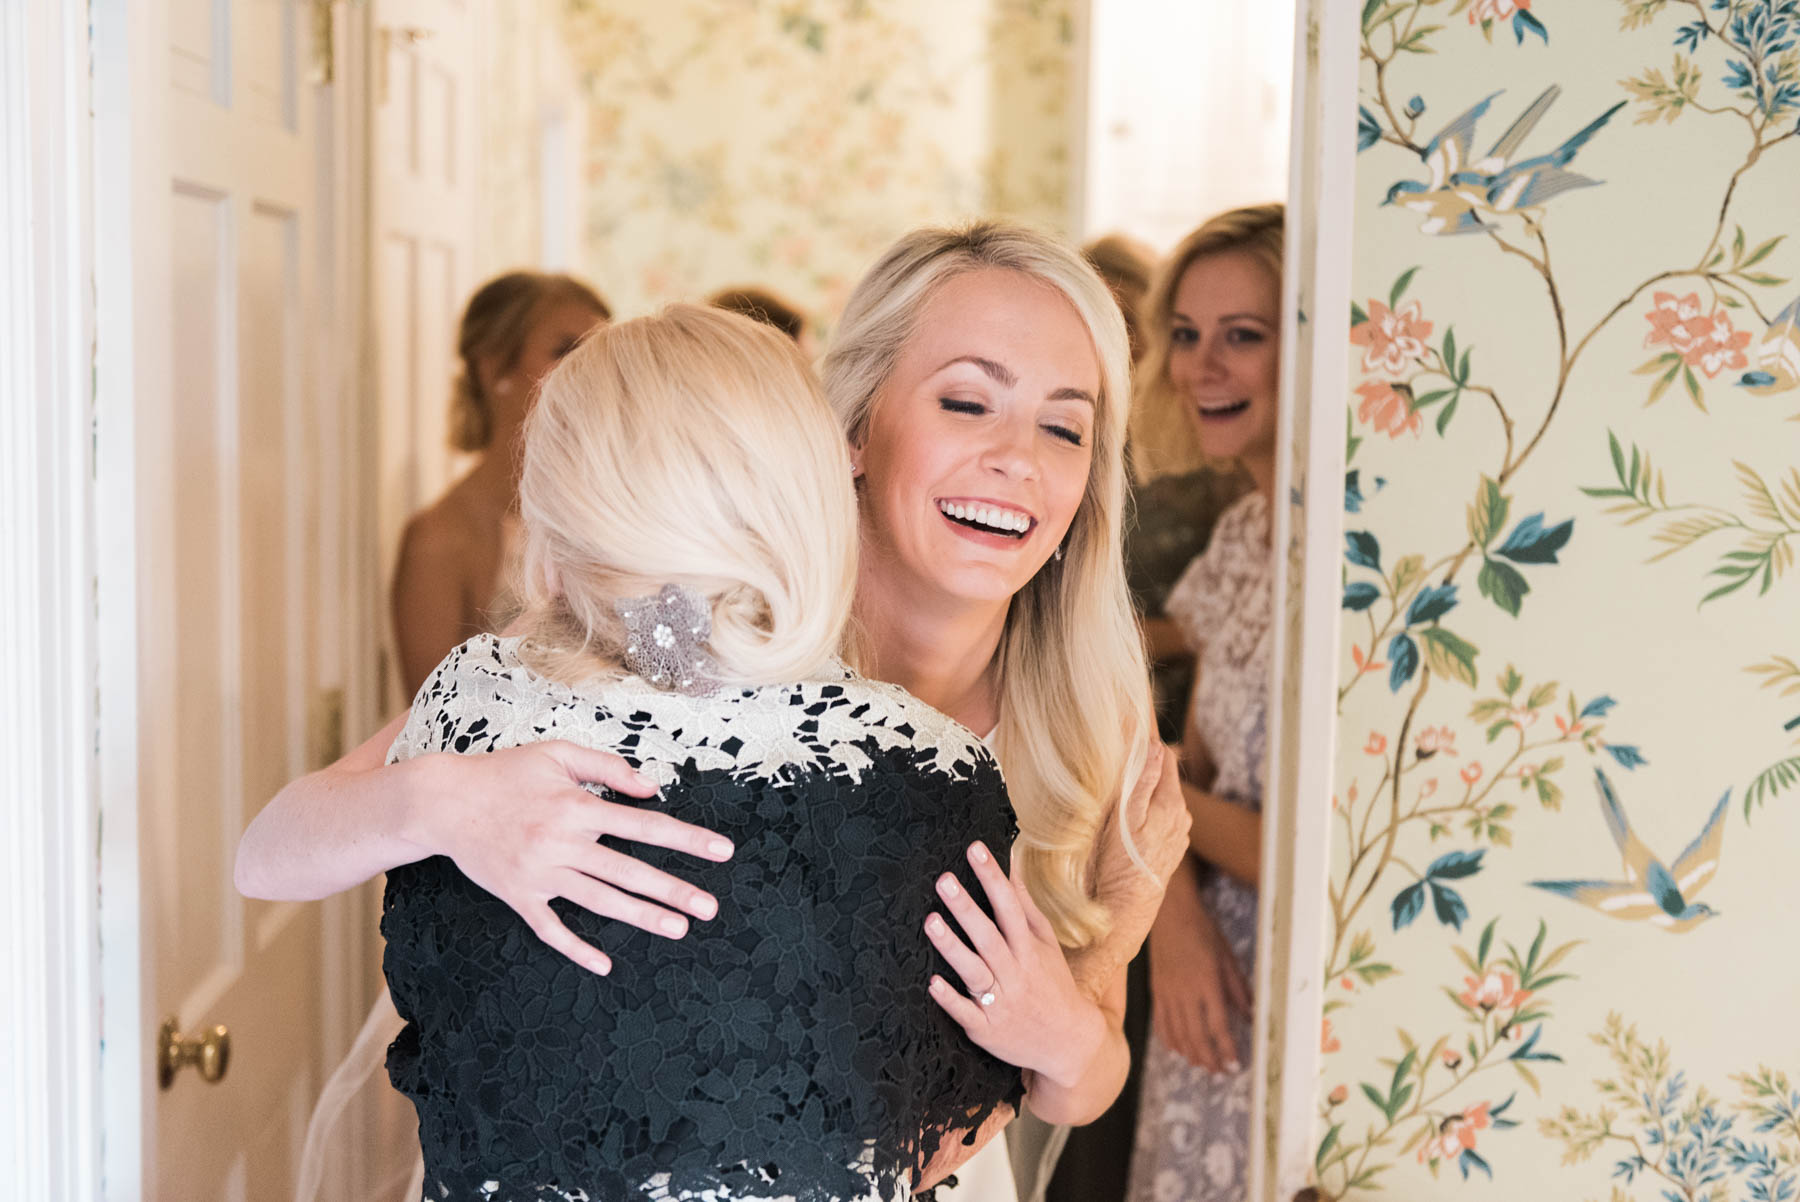 Southern bride, Jillian Attaway, hugs her new mother-in-law while getting ready on her wedding day // Rhyme & Reason